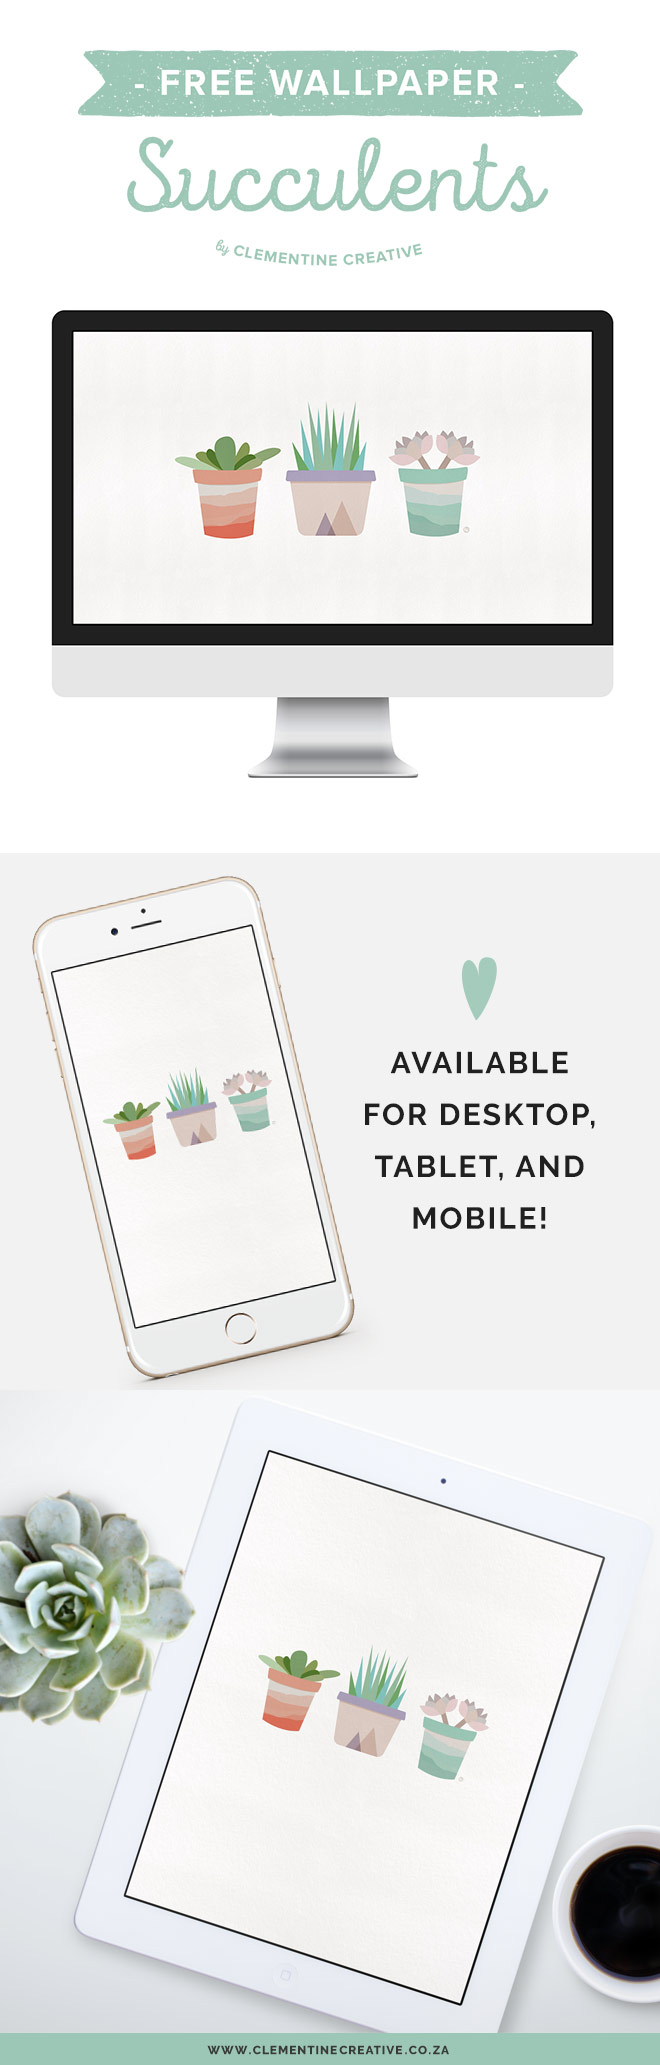 Download-this-cute-succulent-wallpaper-for-your-desktop-tablet-or-phone-wallpaper-wp4806045-1